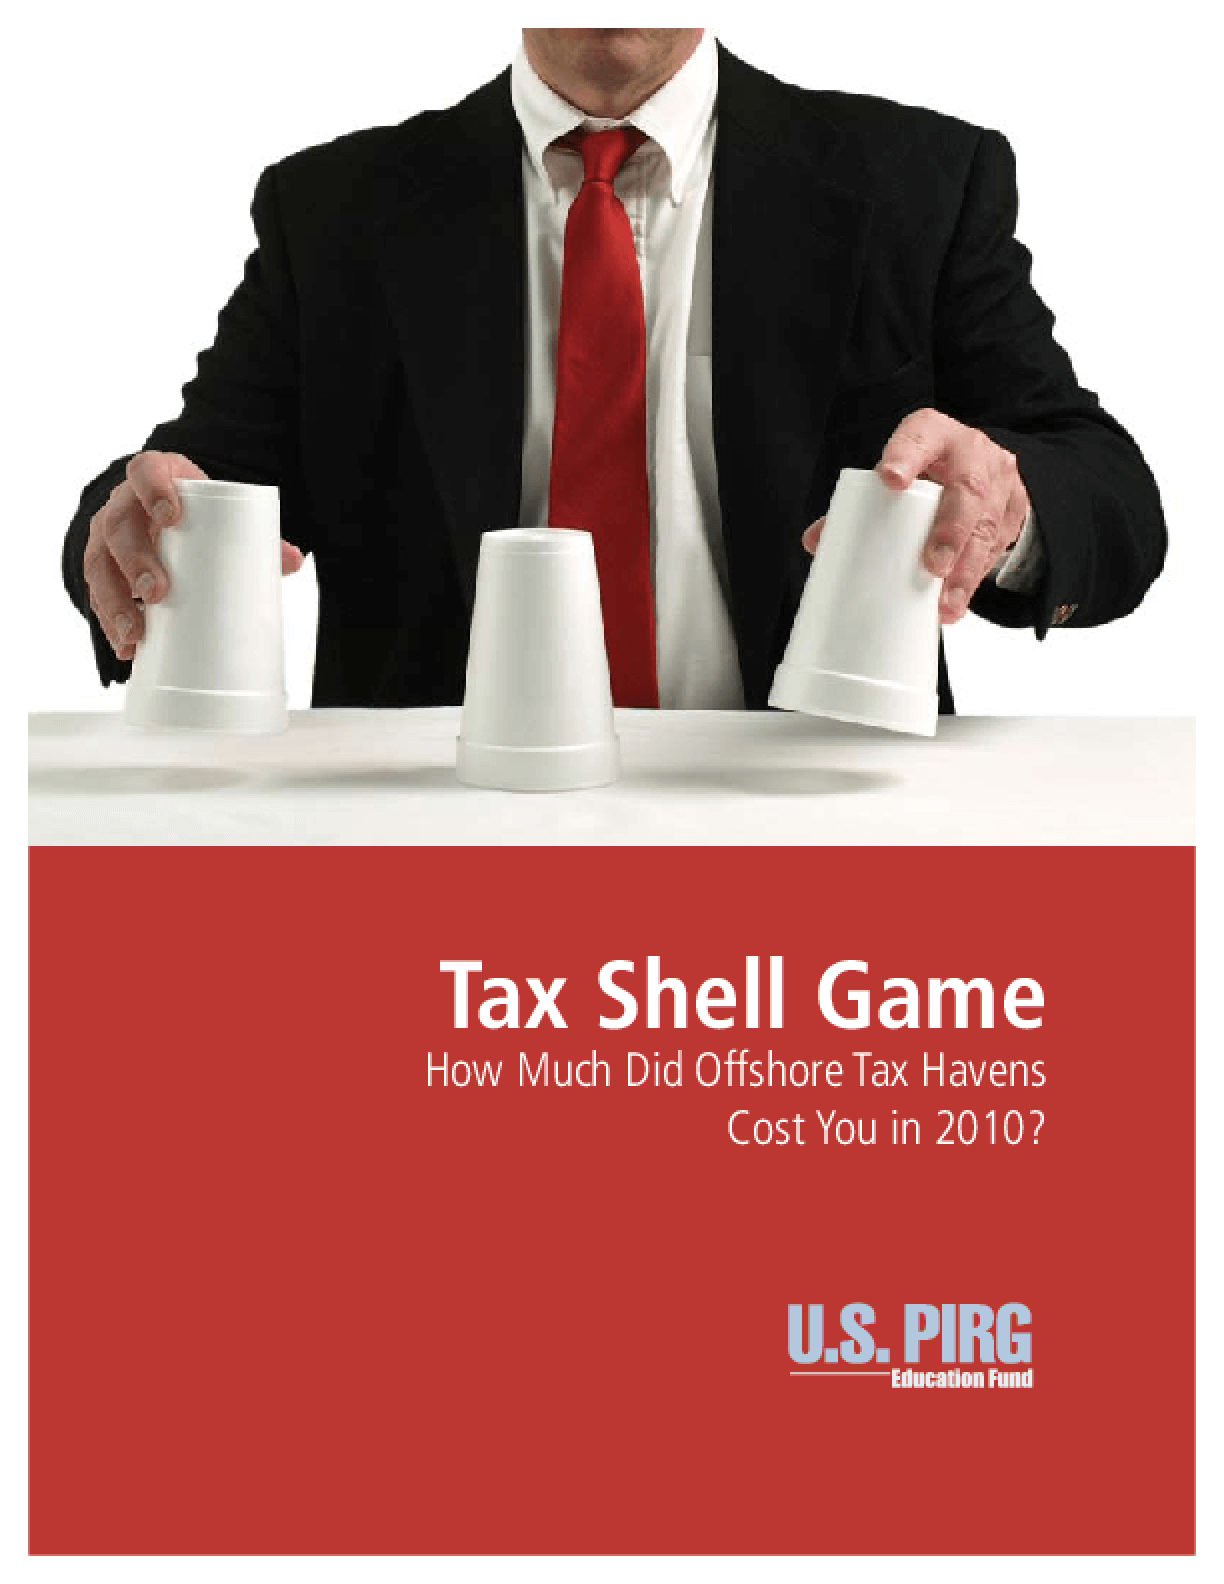 Tax Shell Game: How Much Did Offshore Tax Havens Cost You in 2010?